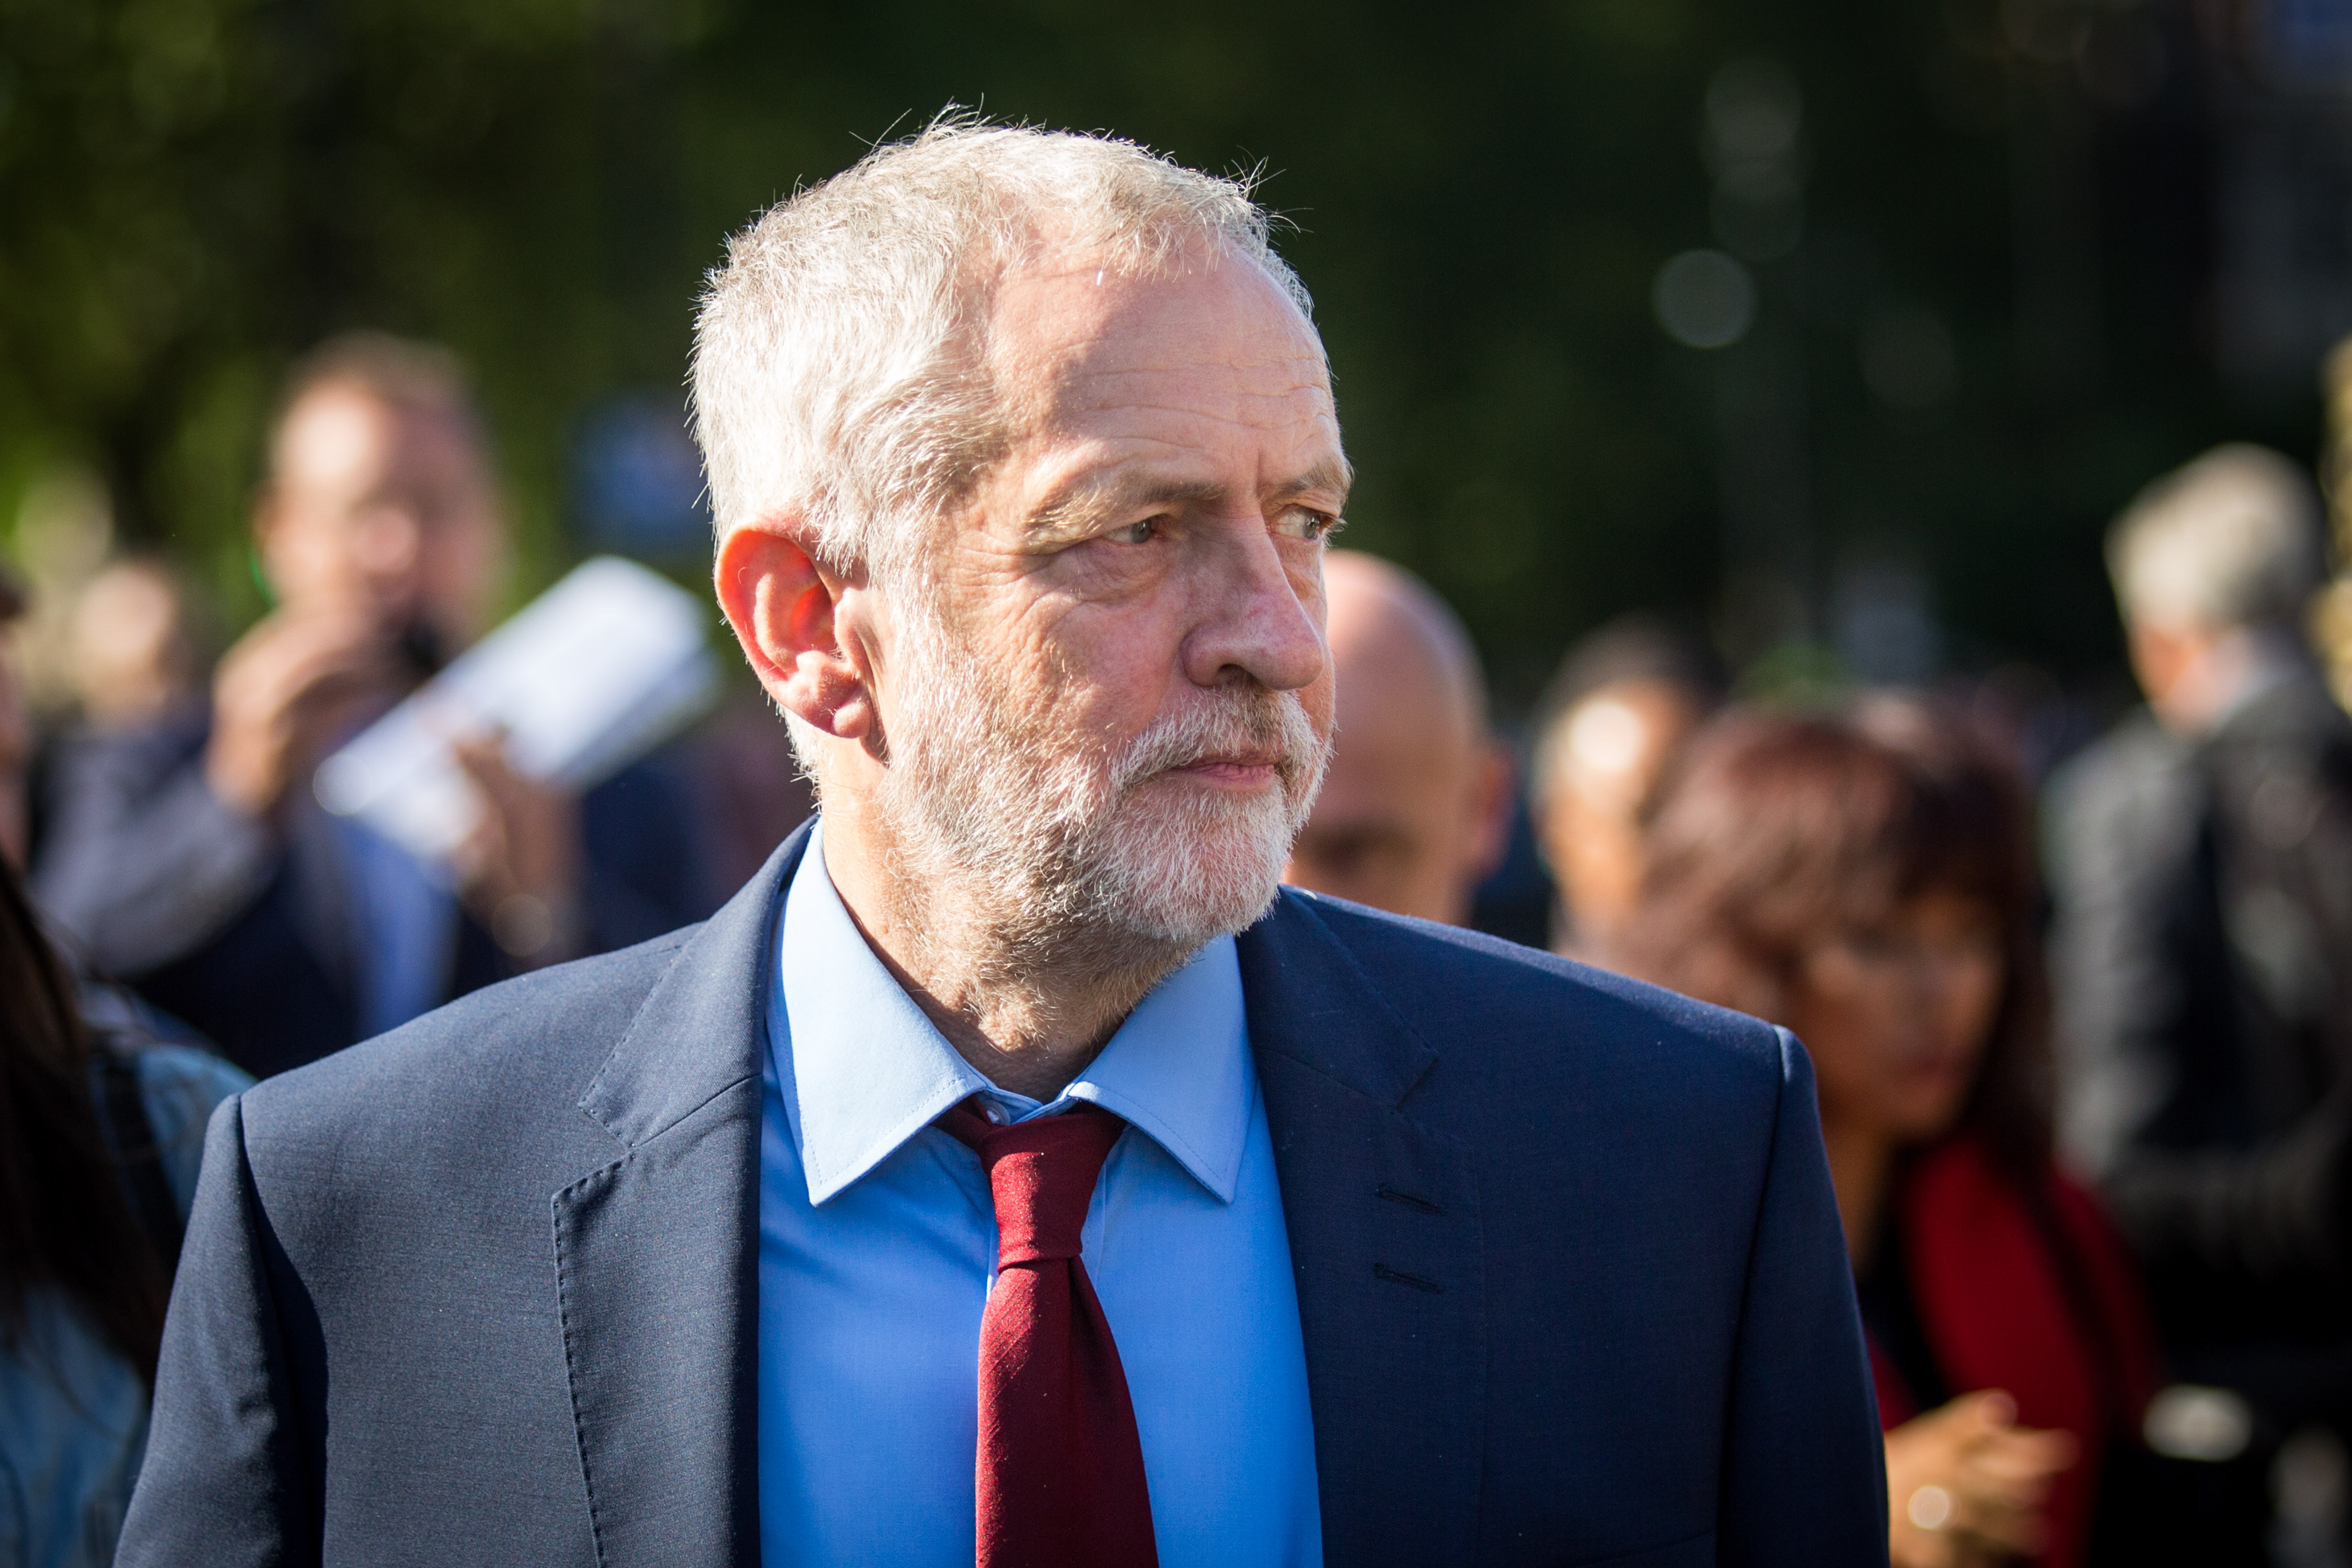 British MP Jeremy Corbyn, leader of the Labour Party, walks towards the Houses of Parliament in London, U.K., on June 24, 2016. (Rob Stothard/Getty Images)